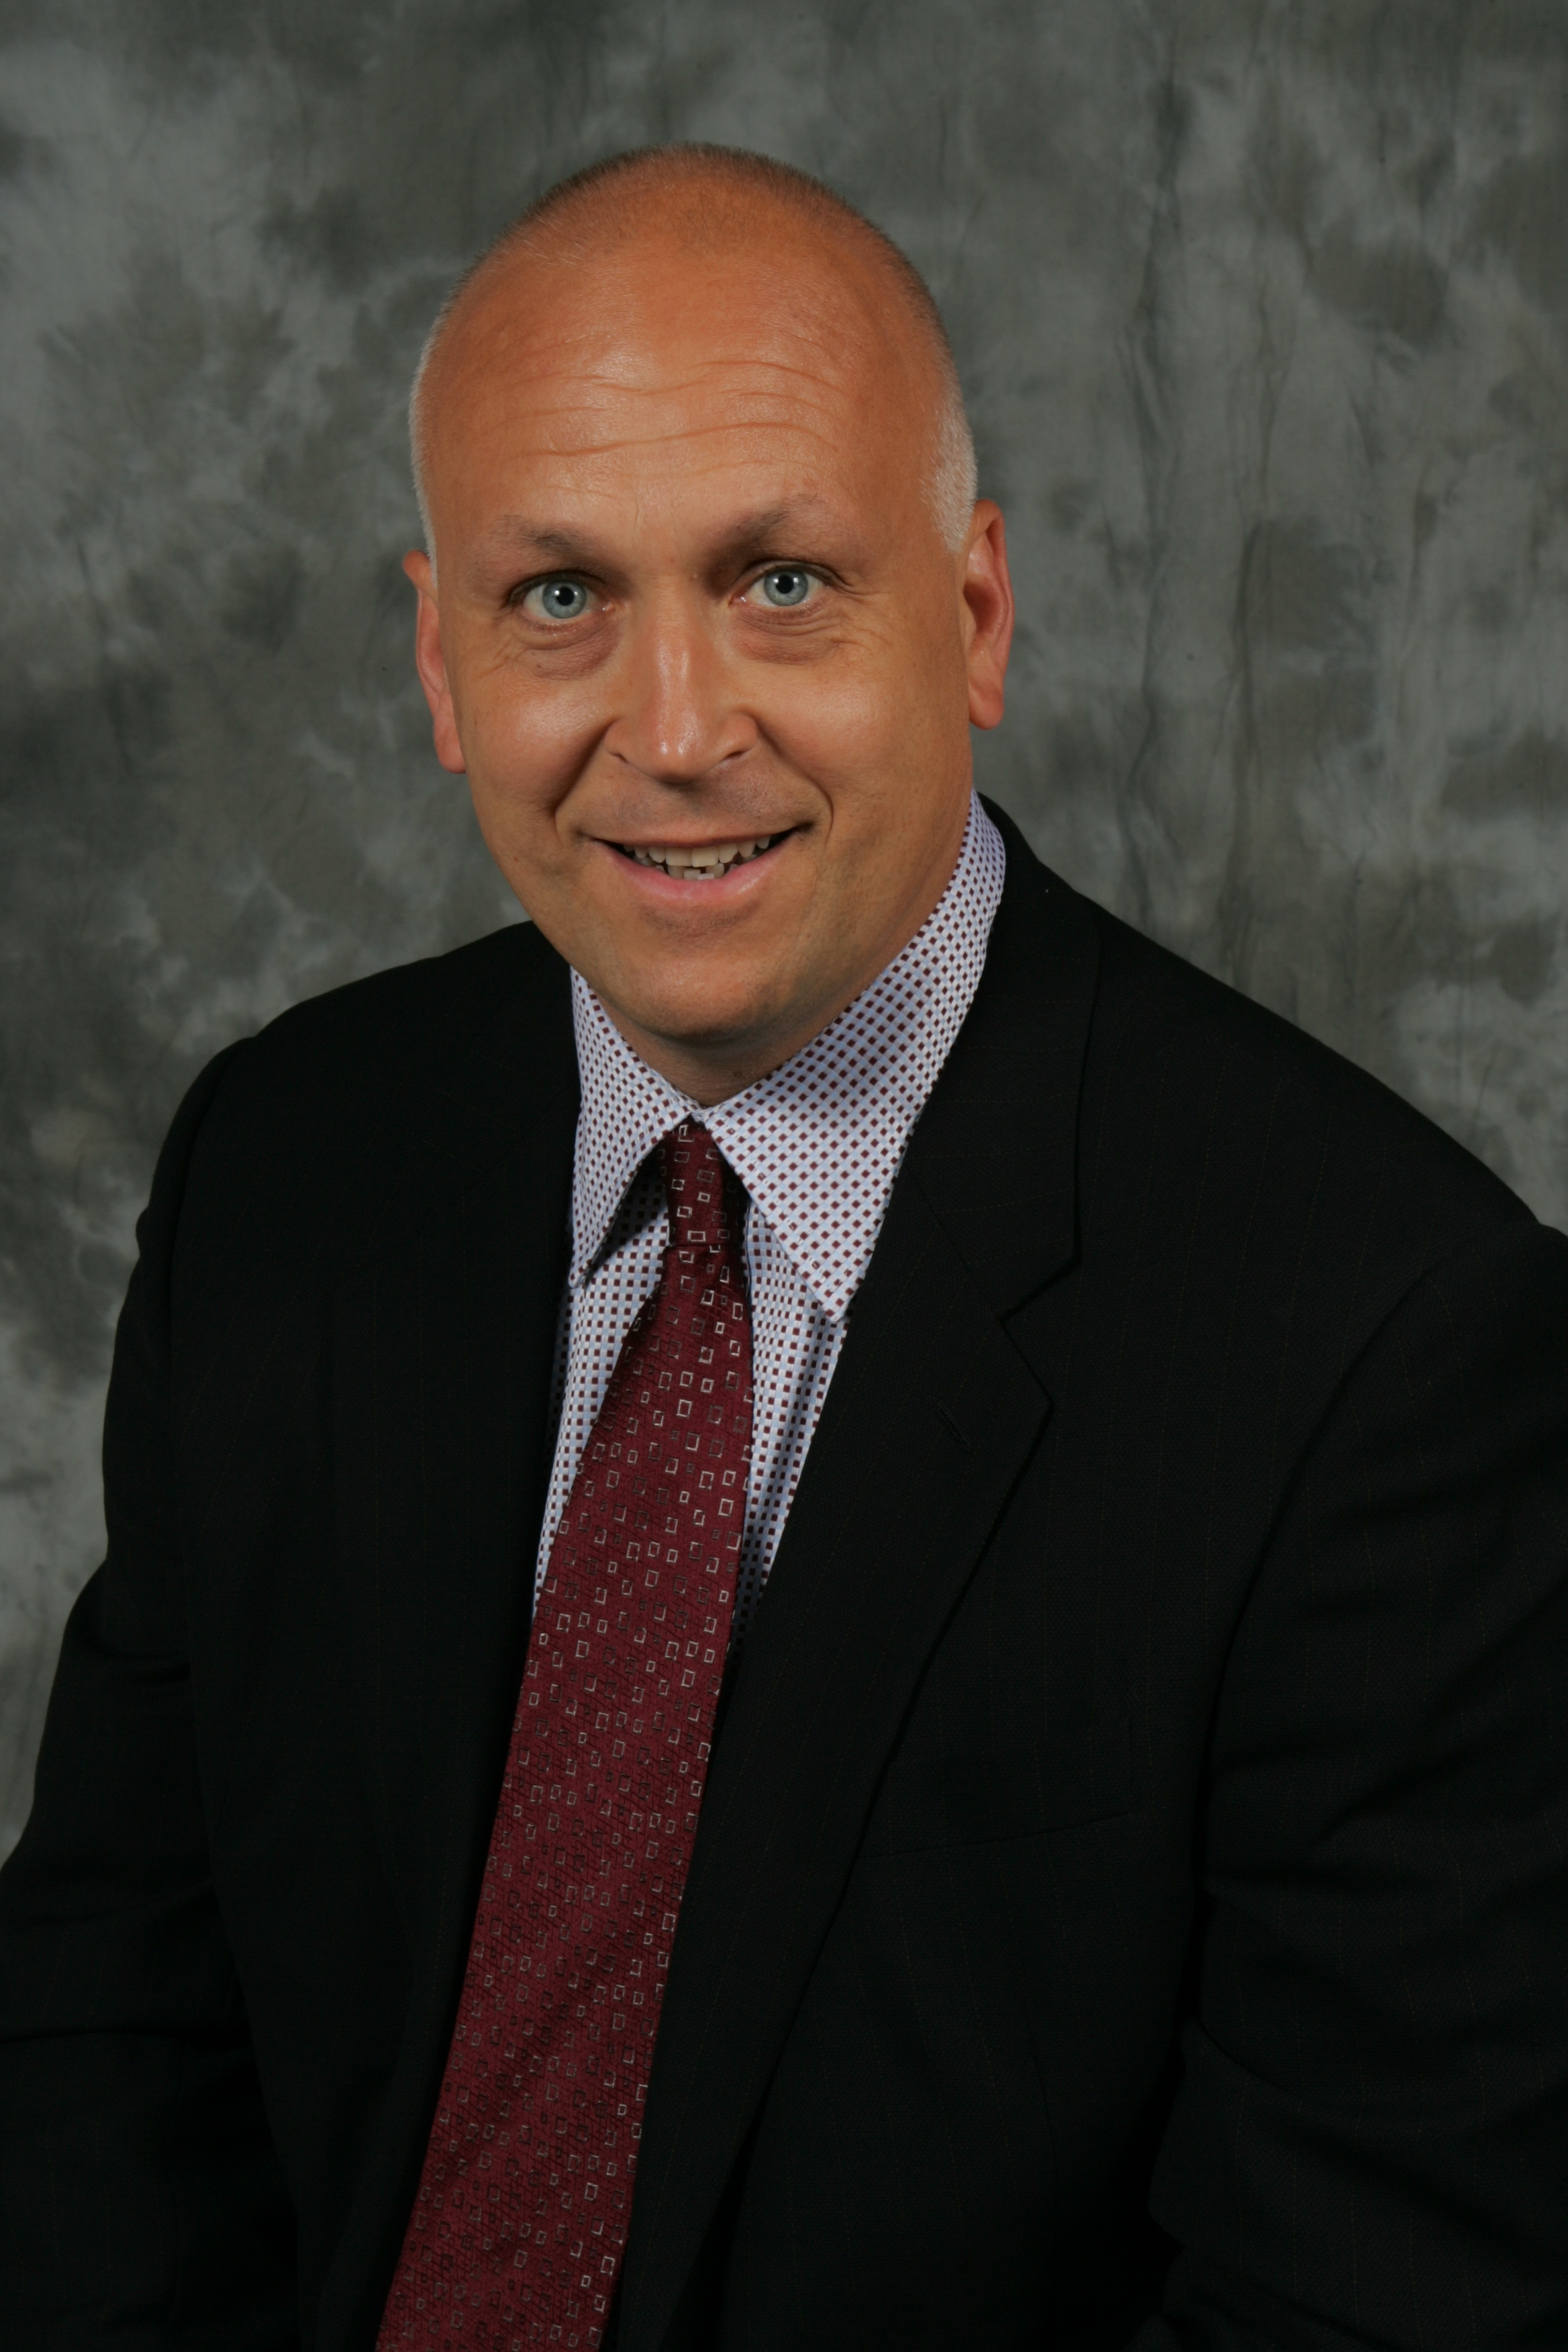 A photograph headshot of a sitting man in a suit